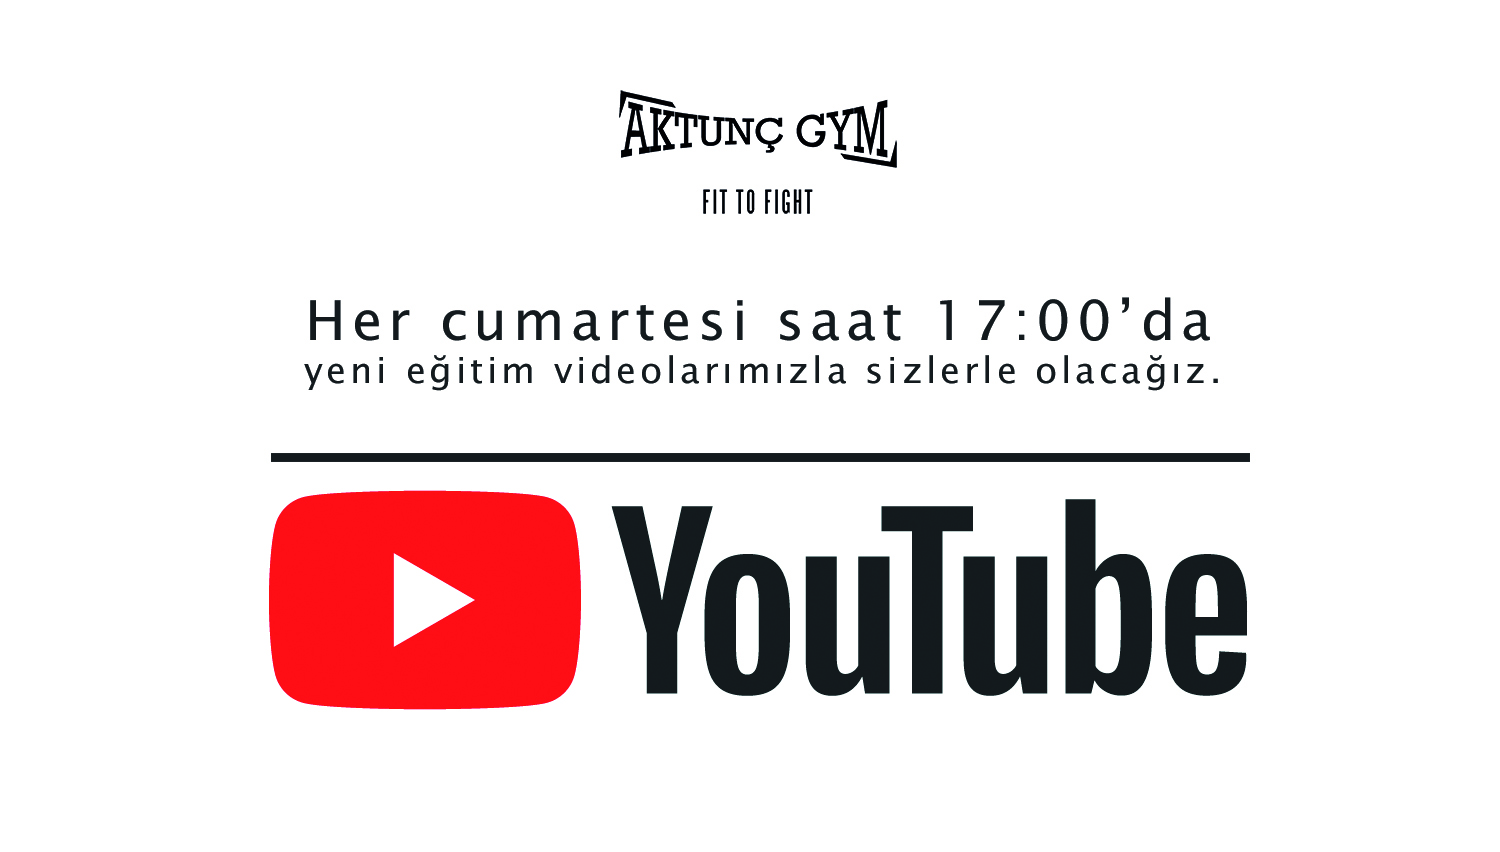 Aktunç Gym Fight Academy YouTube'da